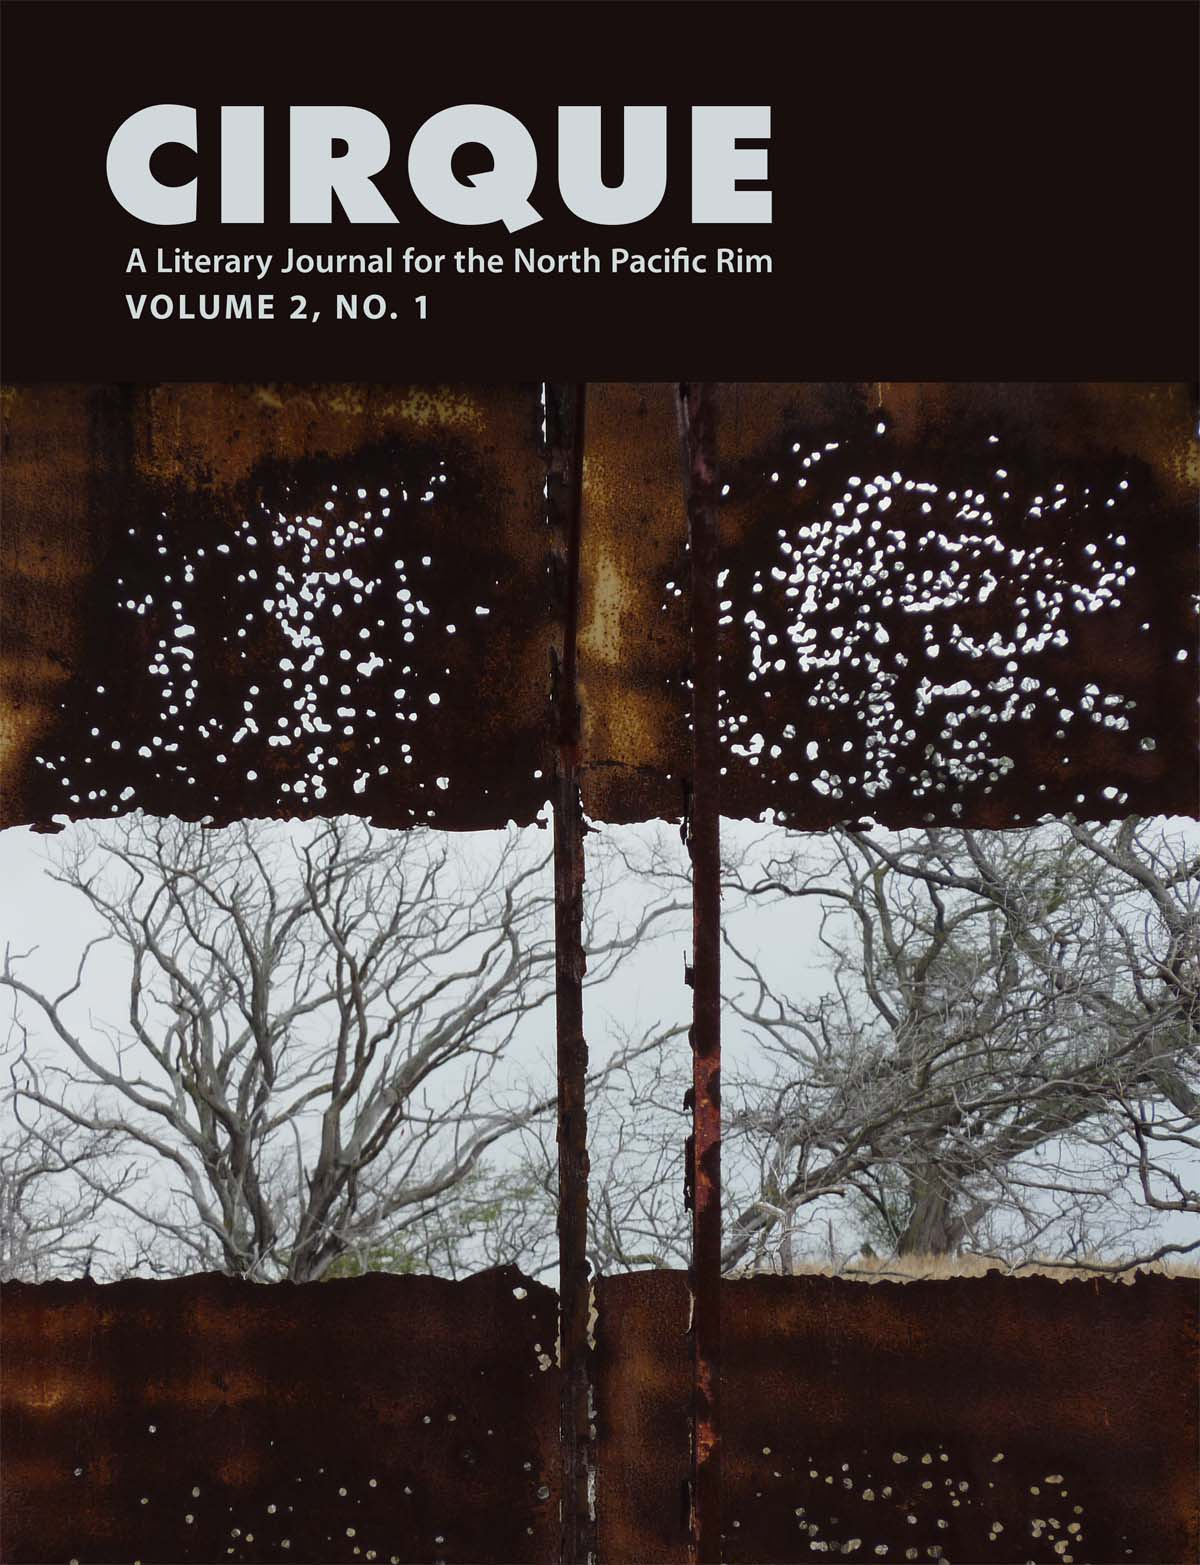 Cirque Literary Journal thumbnail